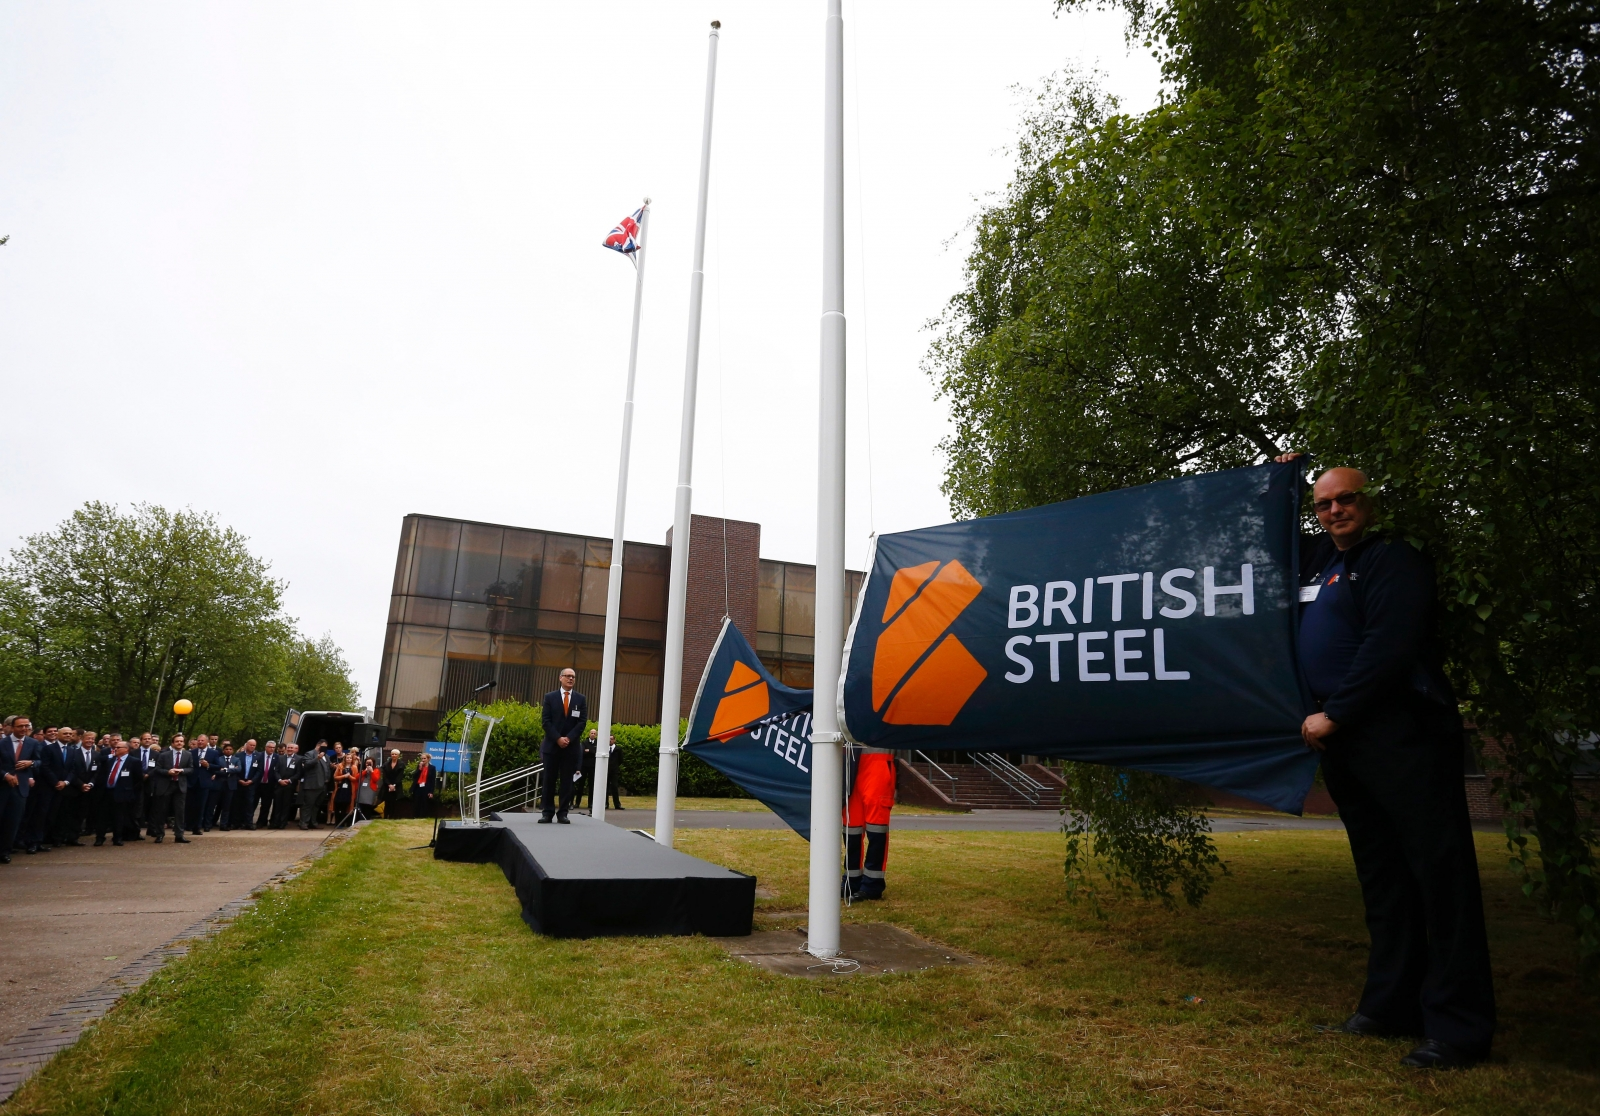 british steel - photo #15